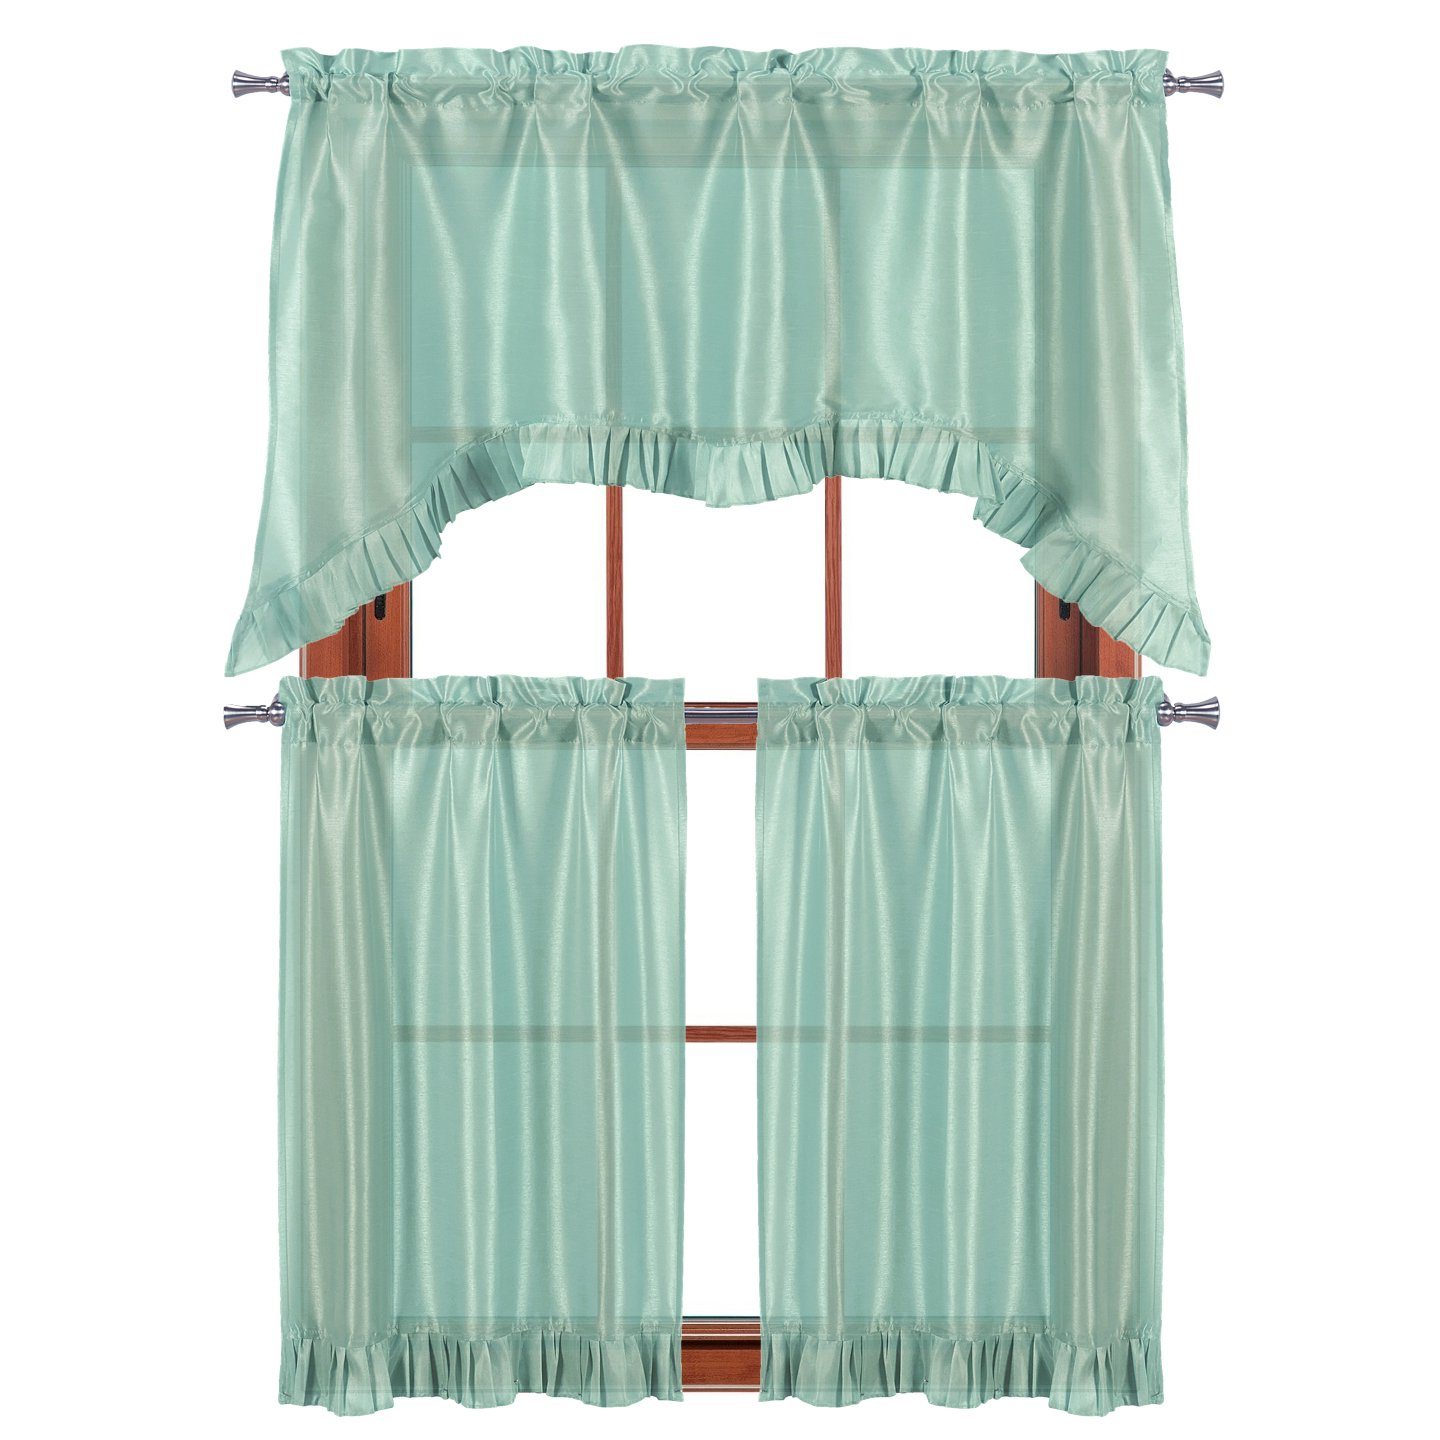 """Pleated Curtain Tiers Pertaining To Widely Used 3 Pc Window Curtain Set: Pleated Ruffle, 1 Swag Valance, 2 36""""l Tiers Panels (aqua Blue) (View 3 of 20)"""